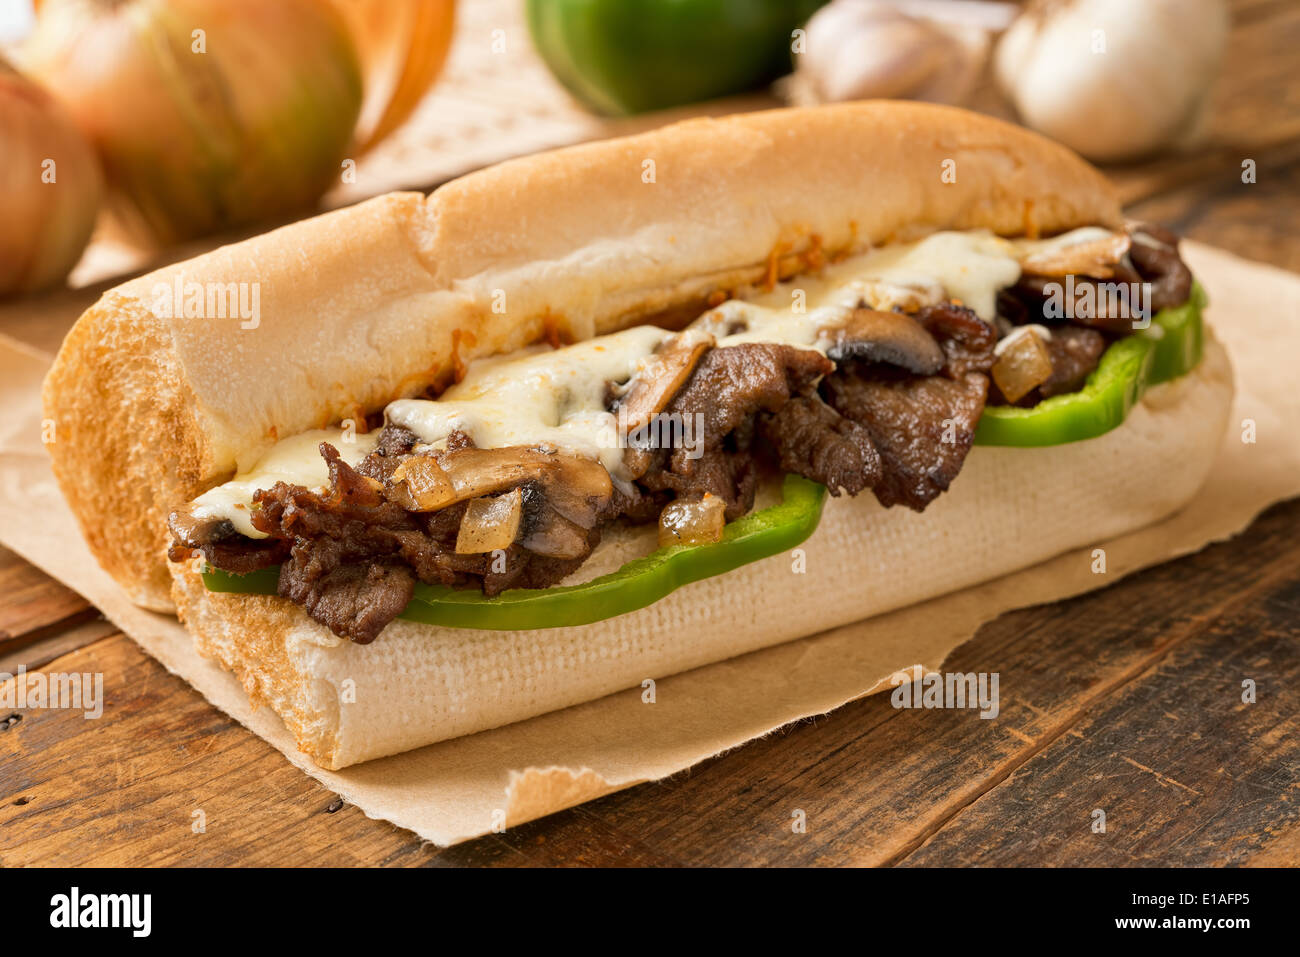 A delicious oven bake steak and cheese submarine sandwich with mushrooms, green peppers, and onion. - Stock Image